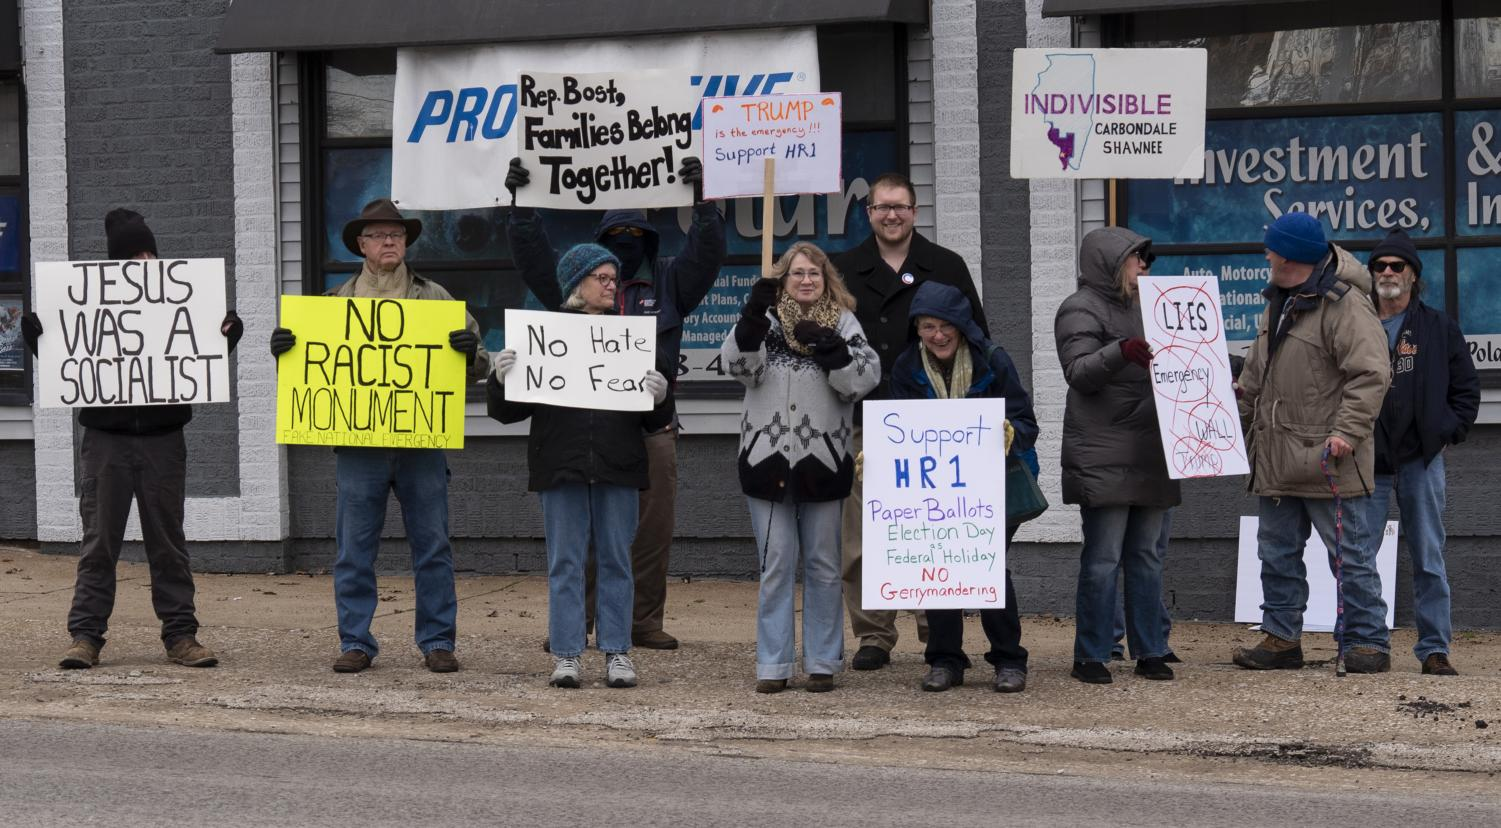 Protestors stand alongside Carbondale mayoral candidate Nathan Colombo on Monday, Feb. 18, 2019 outside Carbondale's Hunter Building. The group protested President Donald Trump's recent declaration of a national emergency on the Mexican border.